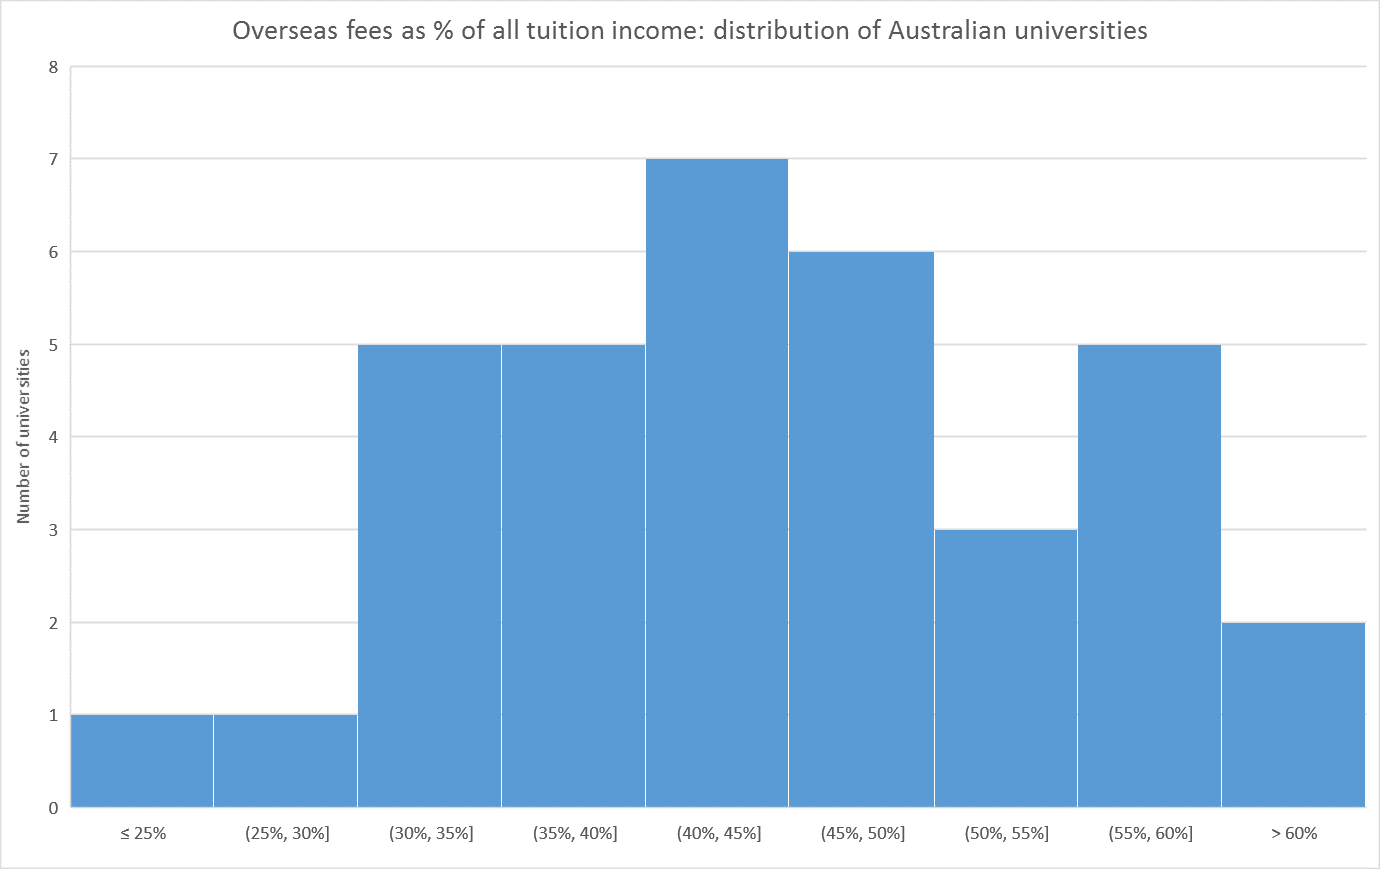 Overseas fees as % of all tuition income: distribution of Australian universities